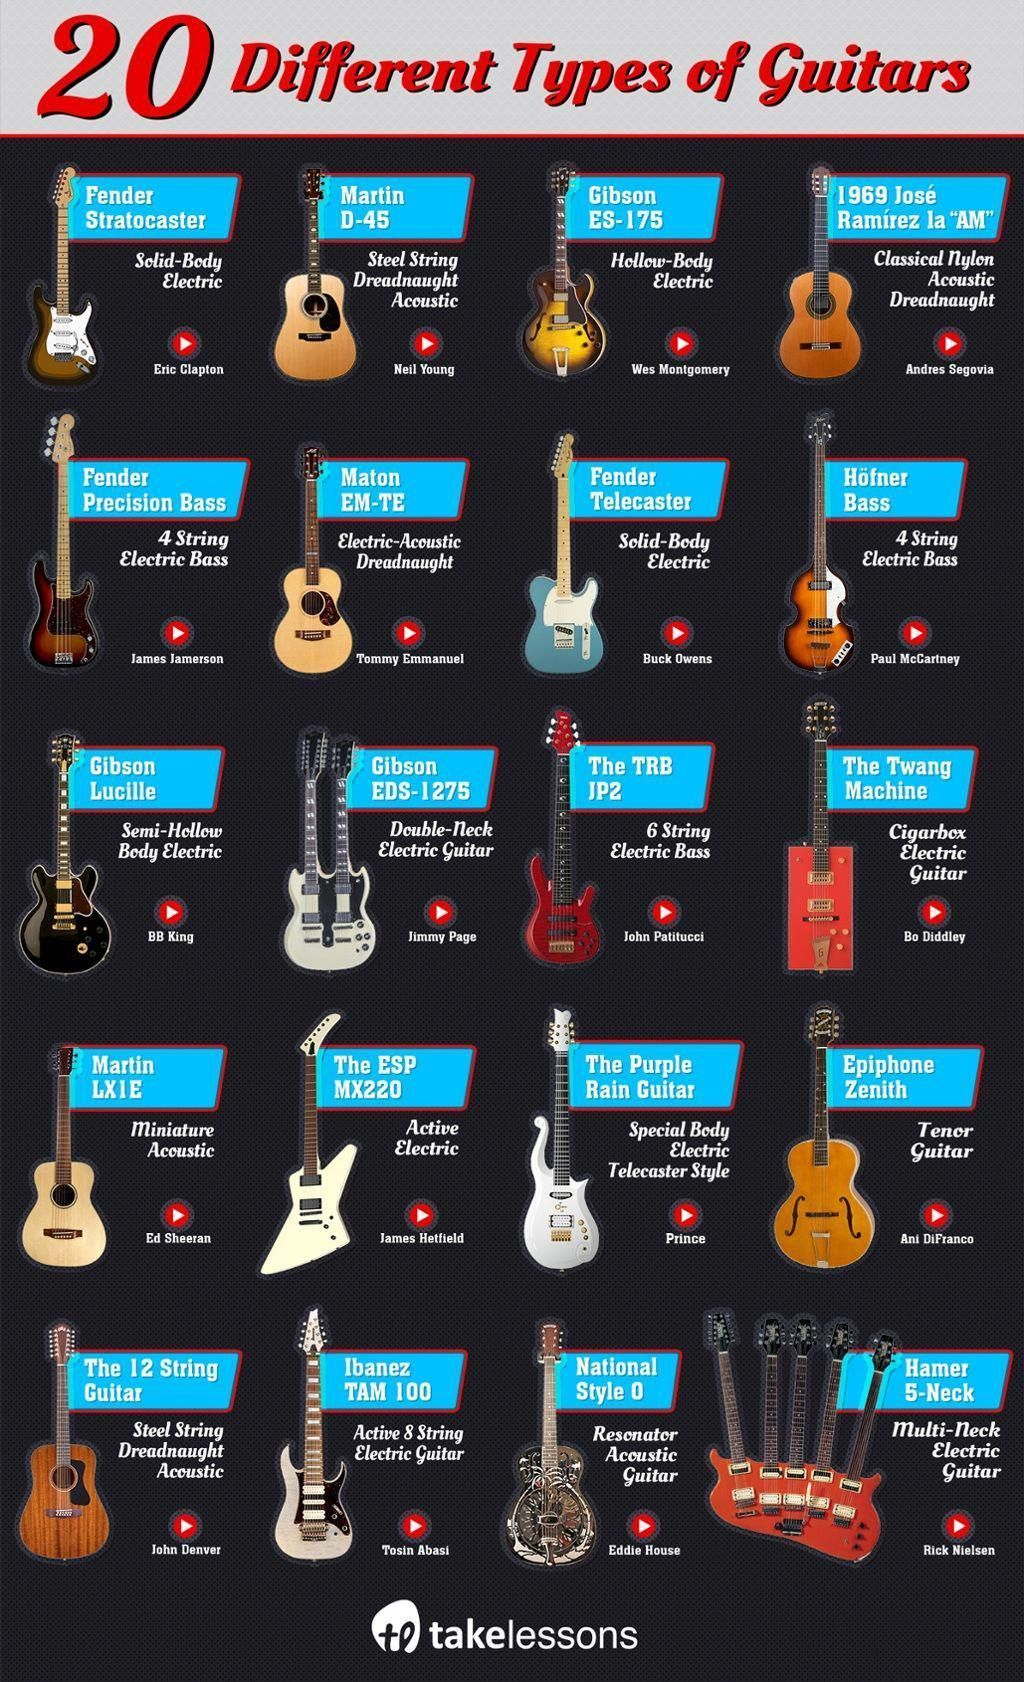 Pin By Zoeyy Marieee On Music Types Of Guitar Playing Guitar Beginner Electric Guitar